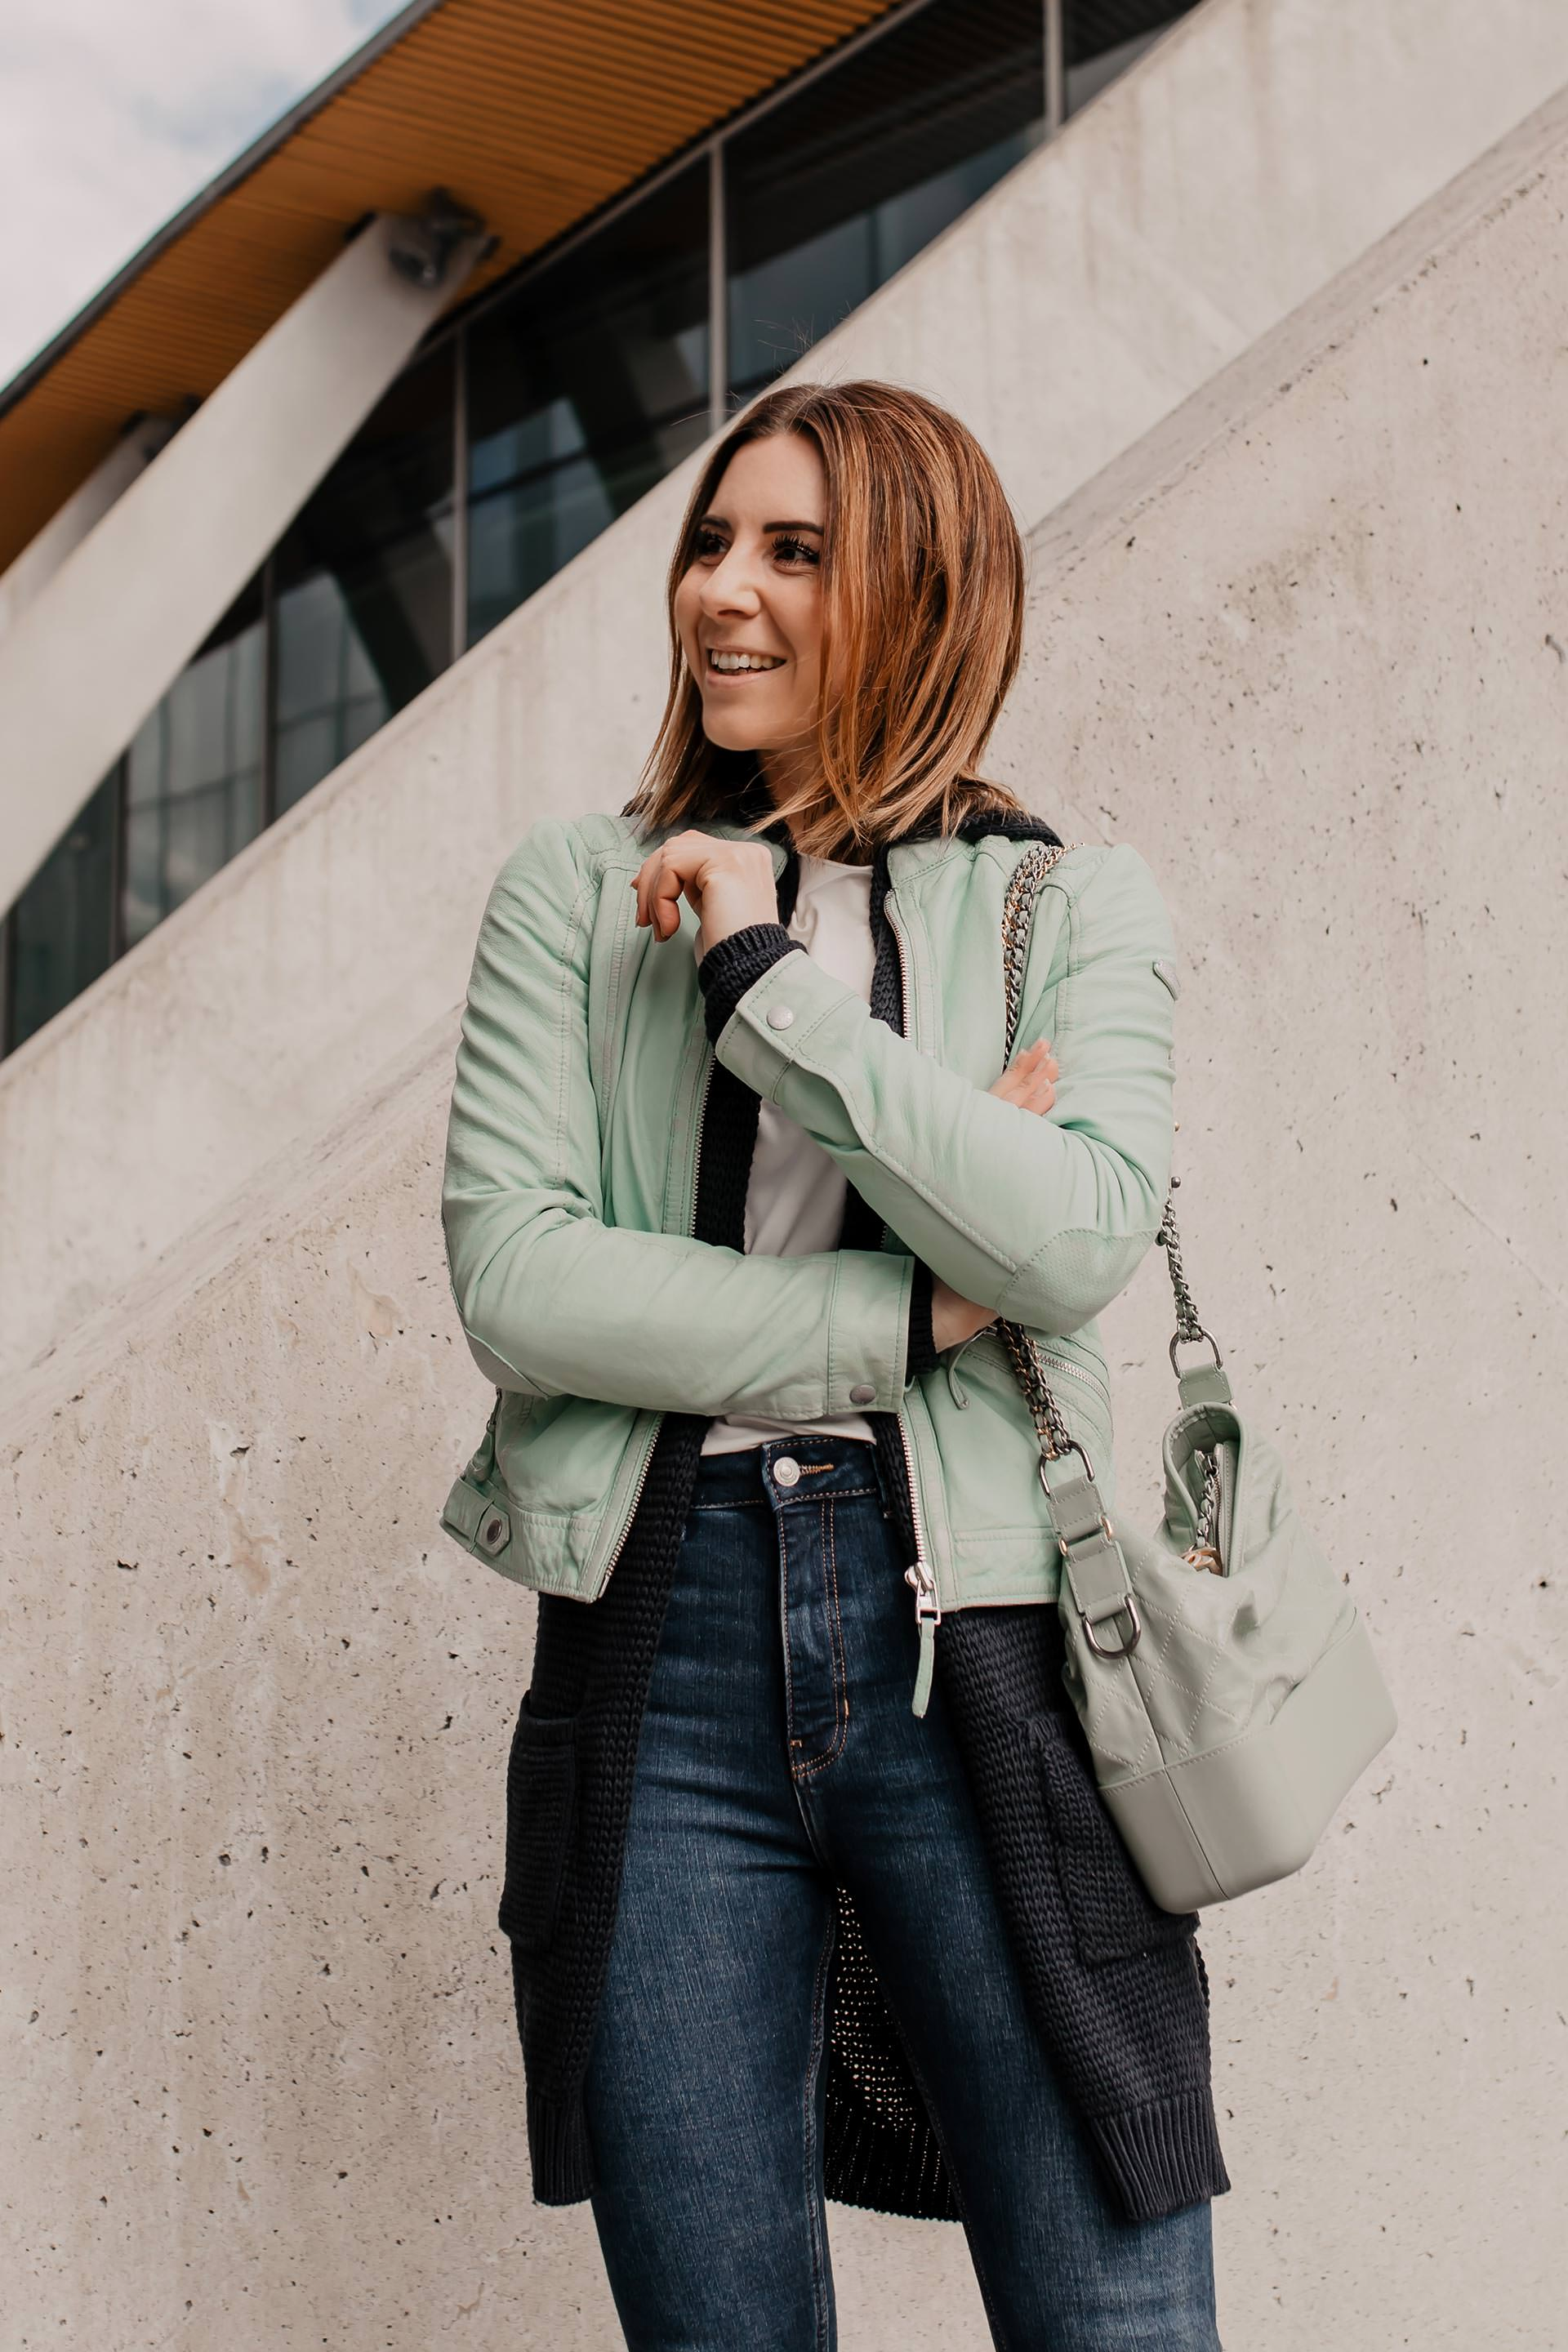 Anzeige // lässiger Alltagslook von SOCCX, Frühlingsoutfit, Basic Casual Outfit, mintfarbene Lederjacke kombinieren, Alltagsoutfit, Outfit mit heller Lederjacke, Casual Kleidung, outfit zusammenstellen, Outfit mit weißen Sneakers, Chanel Gabrielle, Mode Tipps, Modeblogger, www.whoismocca.com #alltagsoutfit #outfitdestages #frühlingsoutfit #modetrends #lederjacke #sneakers